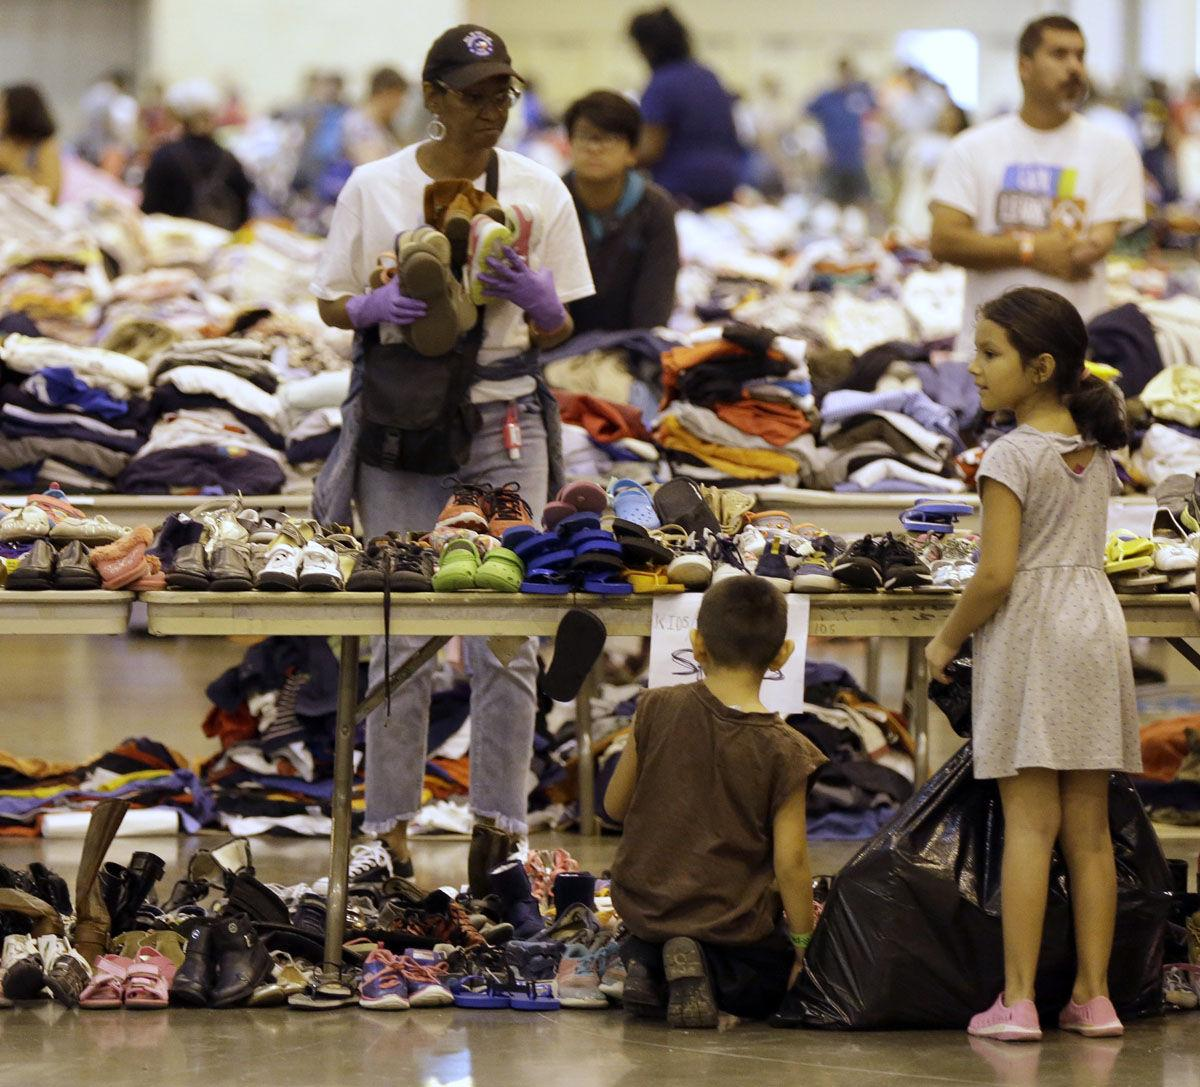 Harvey flood evacuee children look through donated shoes at a shelter setup inside NRG Center Wednesday in Houston.